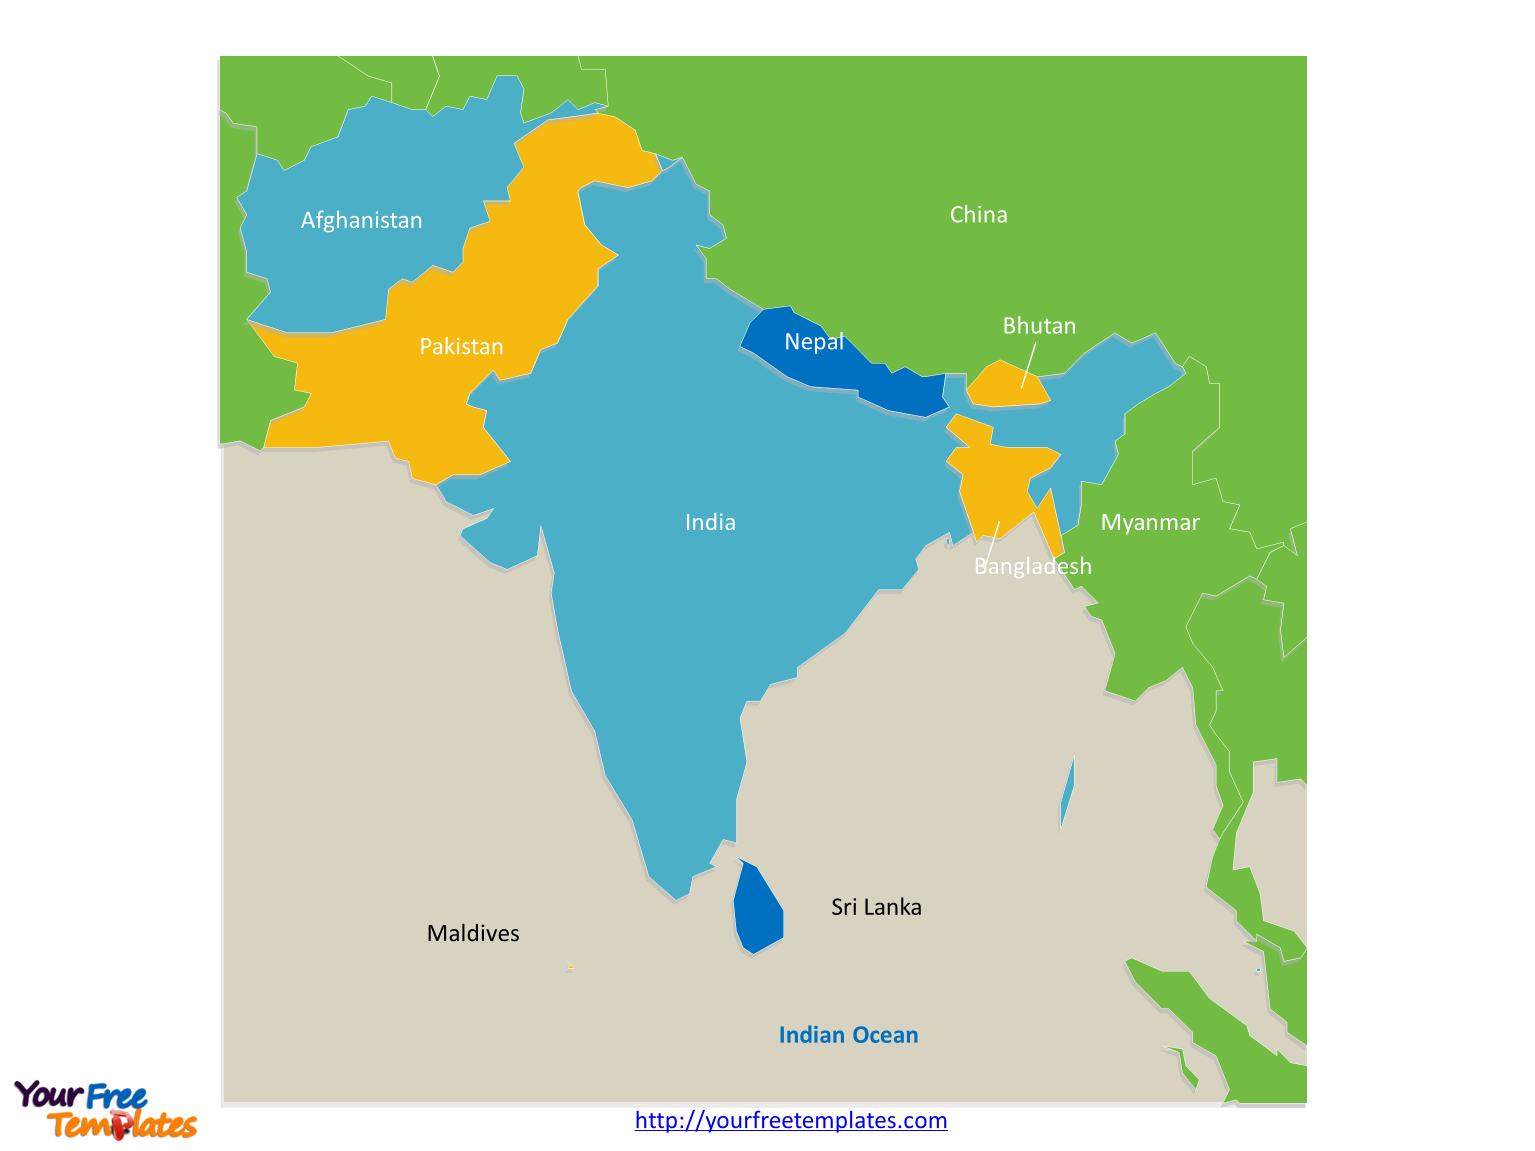 Free South Asia Editable Map Free PowerPoint Templates - South asia map